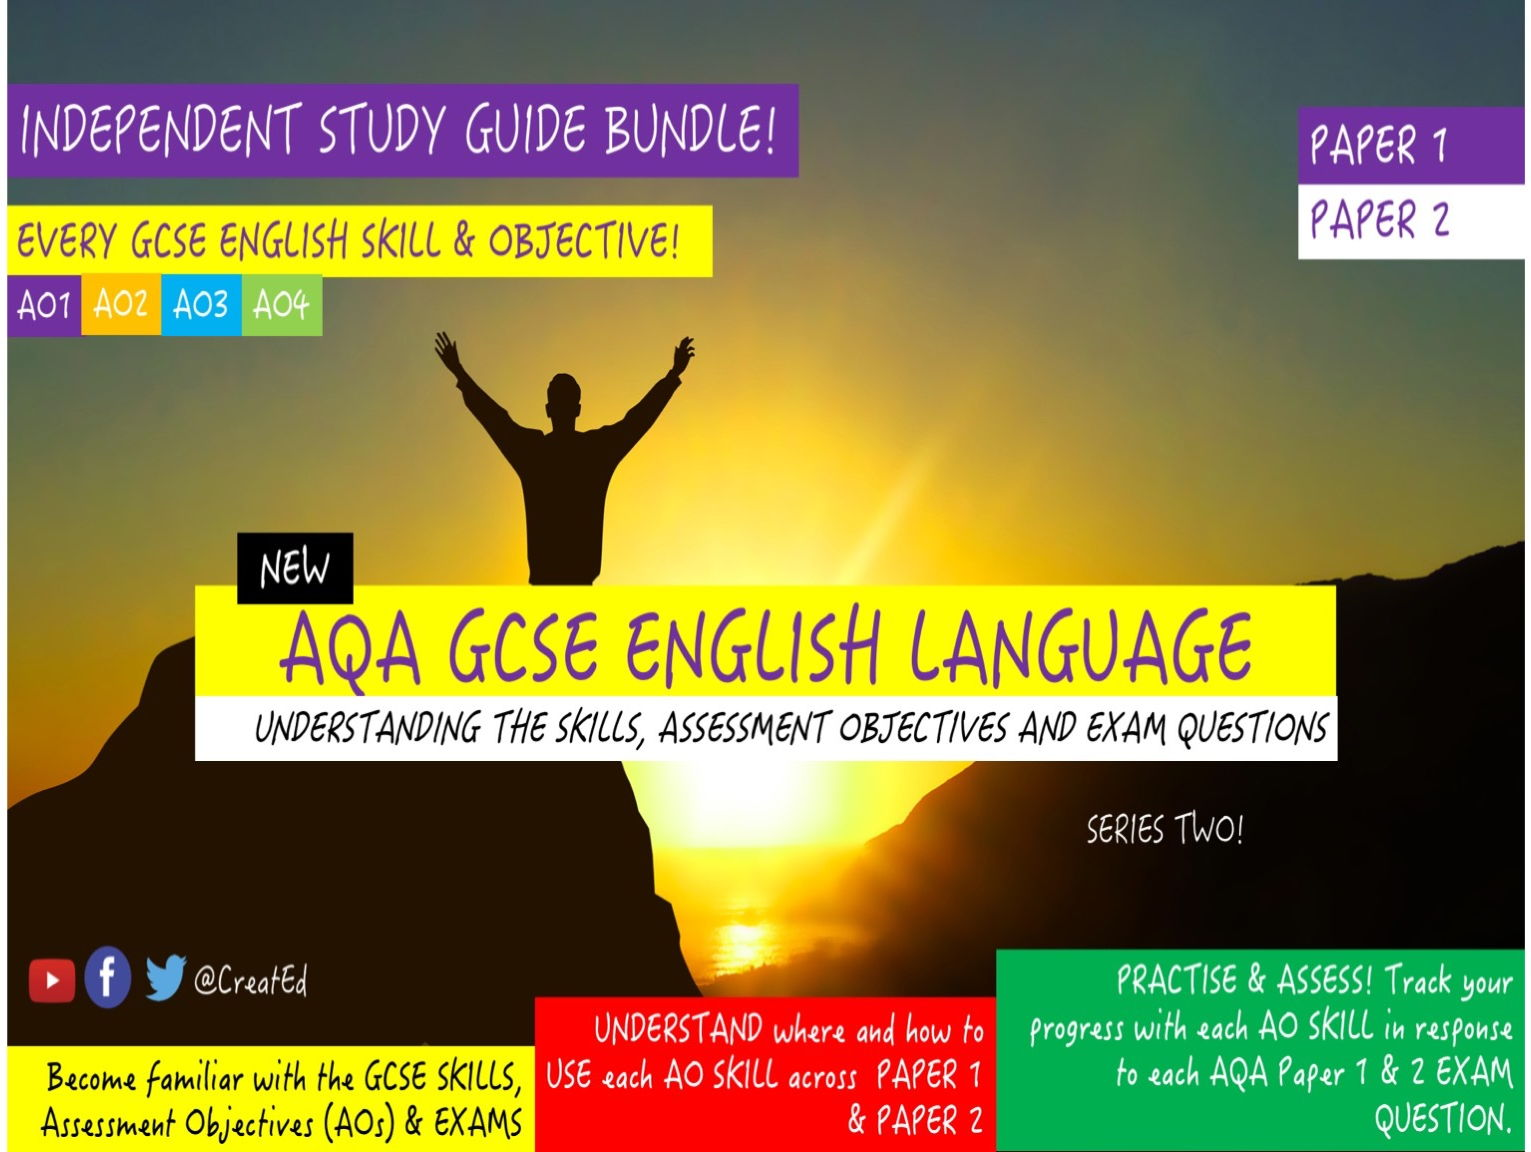 COMPLETE SERIES BUNDLE Revision Guide, NEW AQA GCSE English Language,